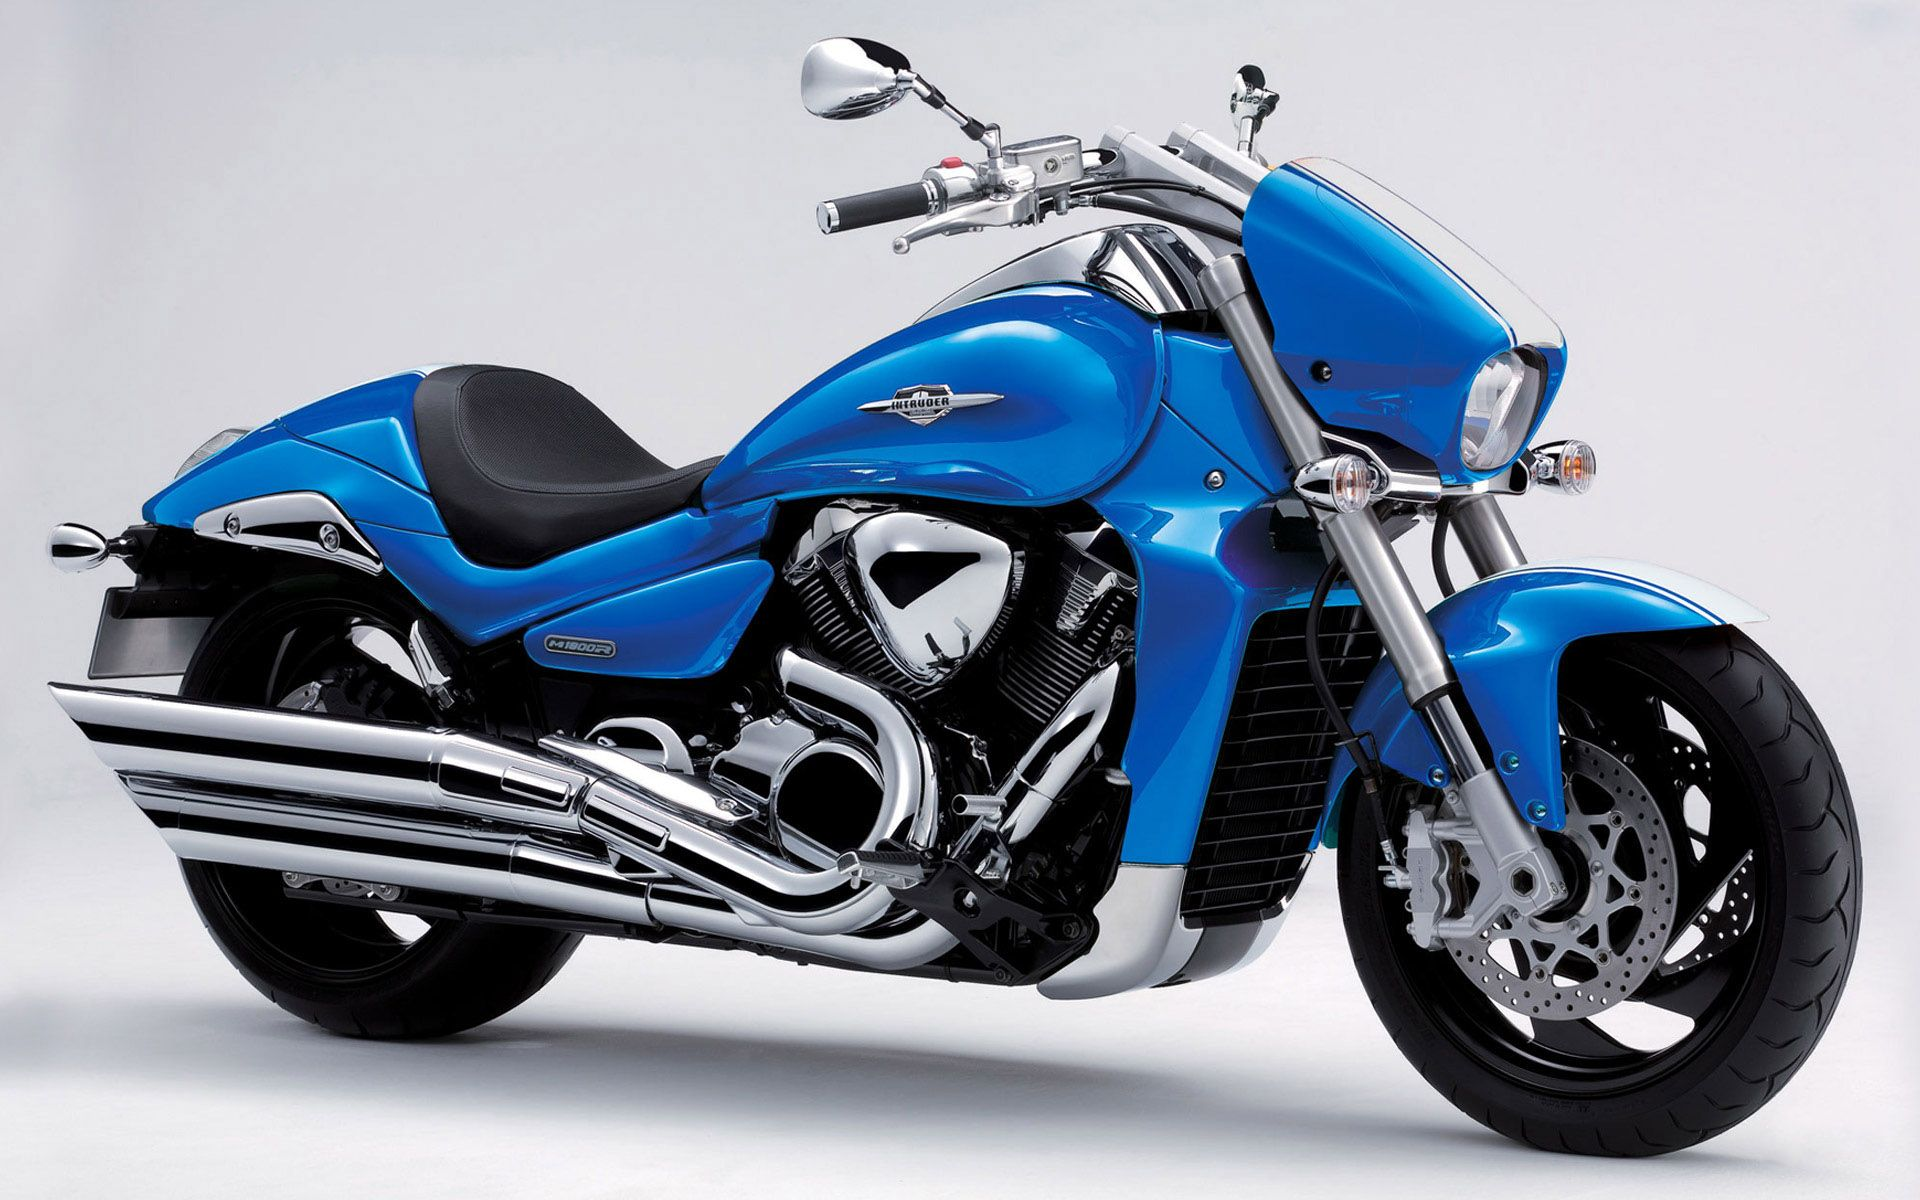 Suzuki boulevard mr images for free download